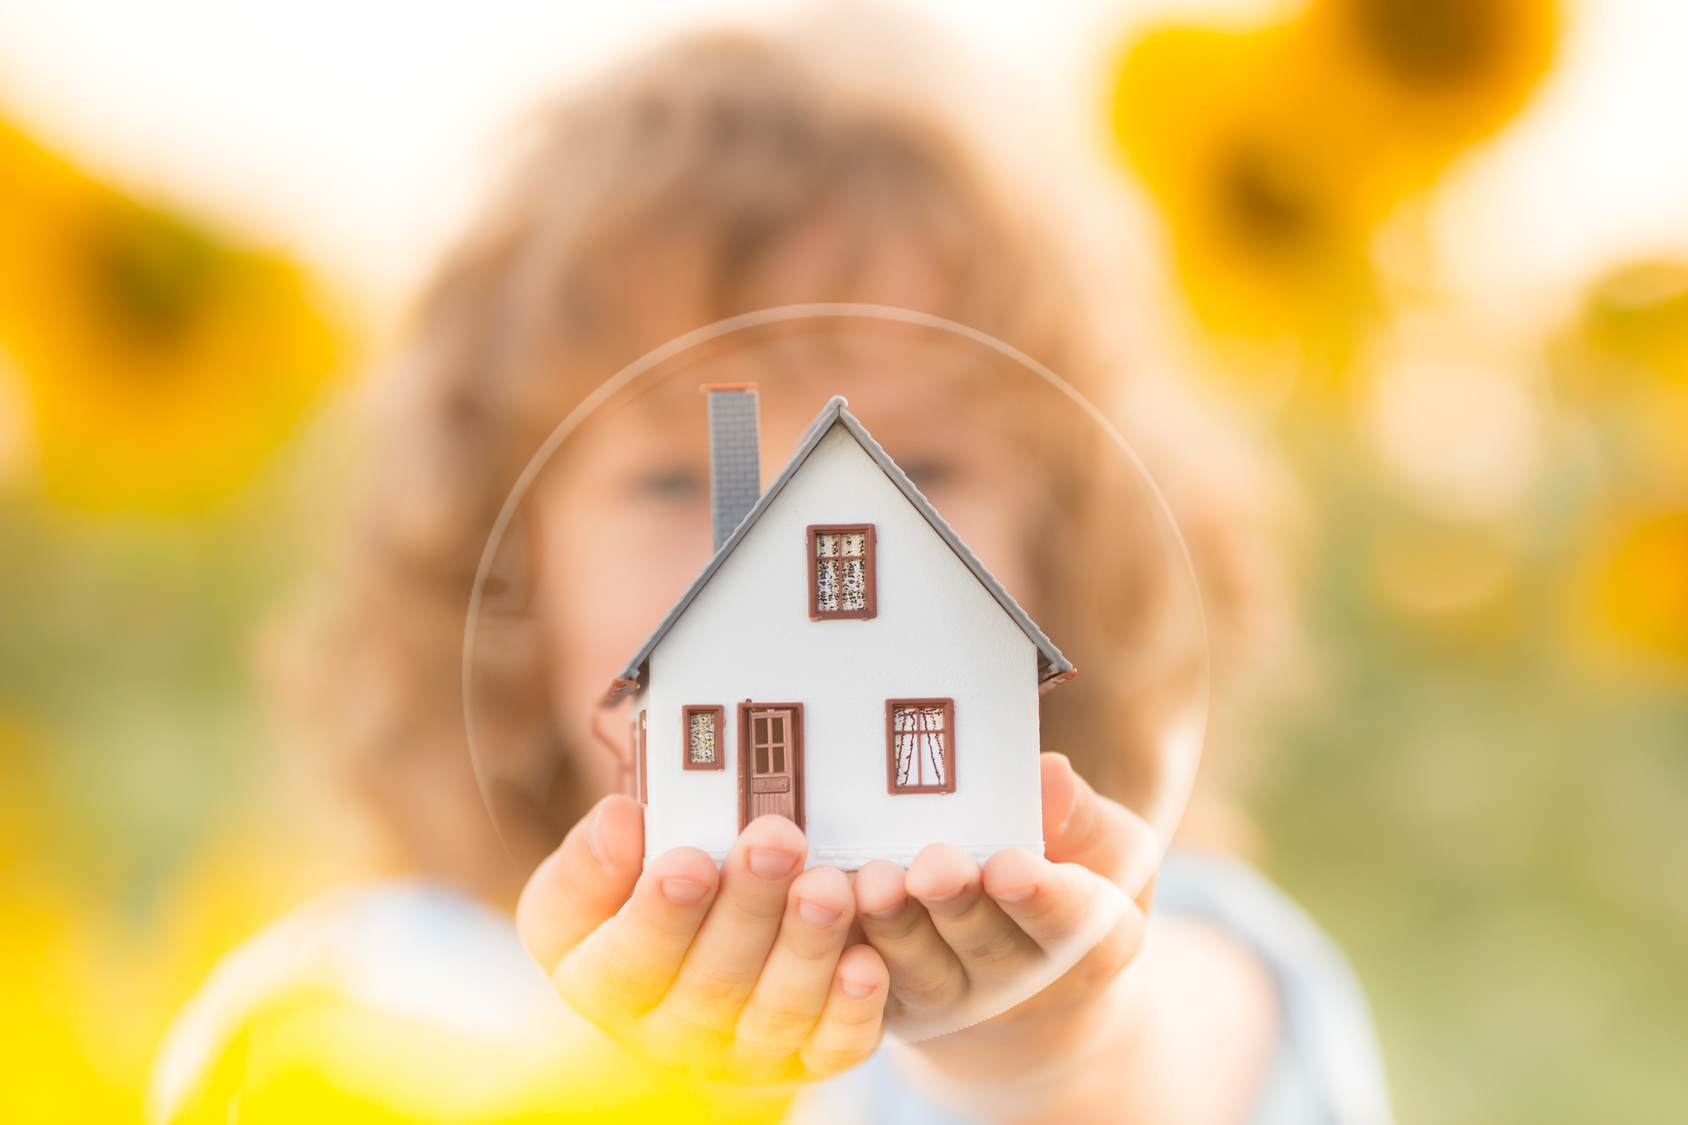 A child holding a miniature house in the palms of both hands